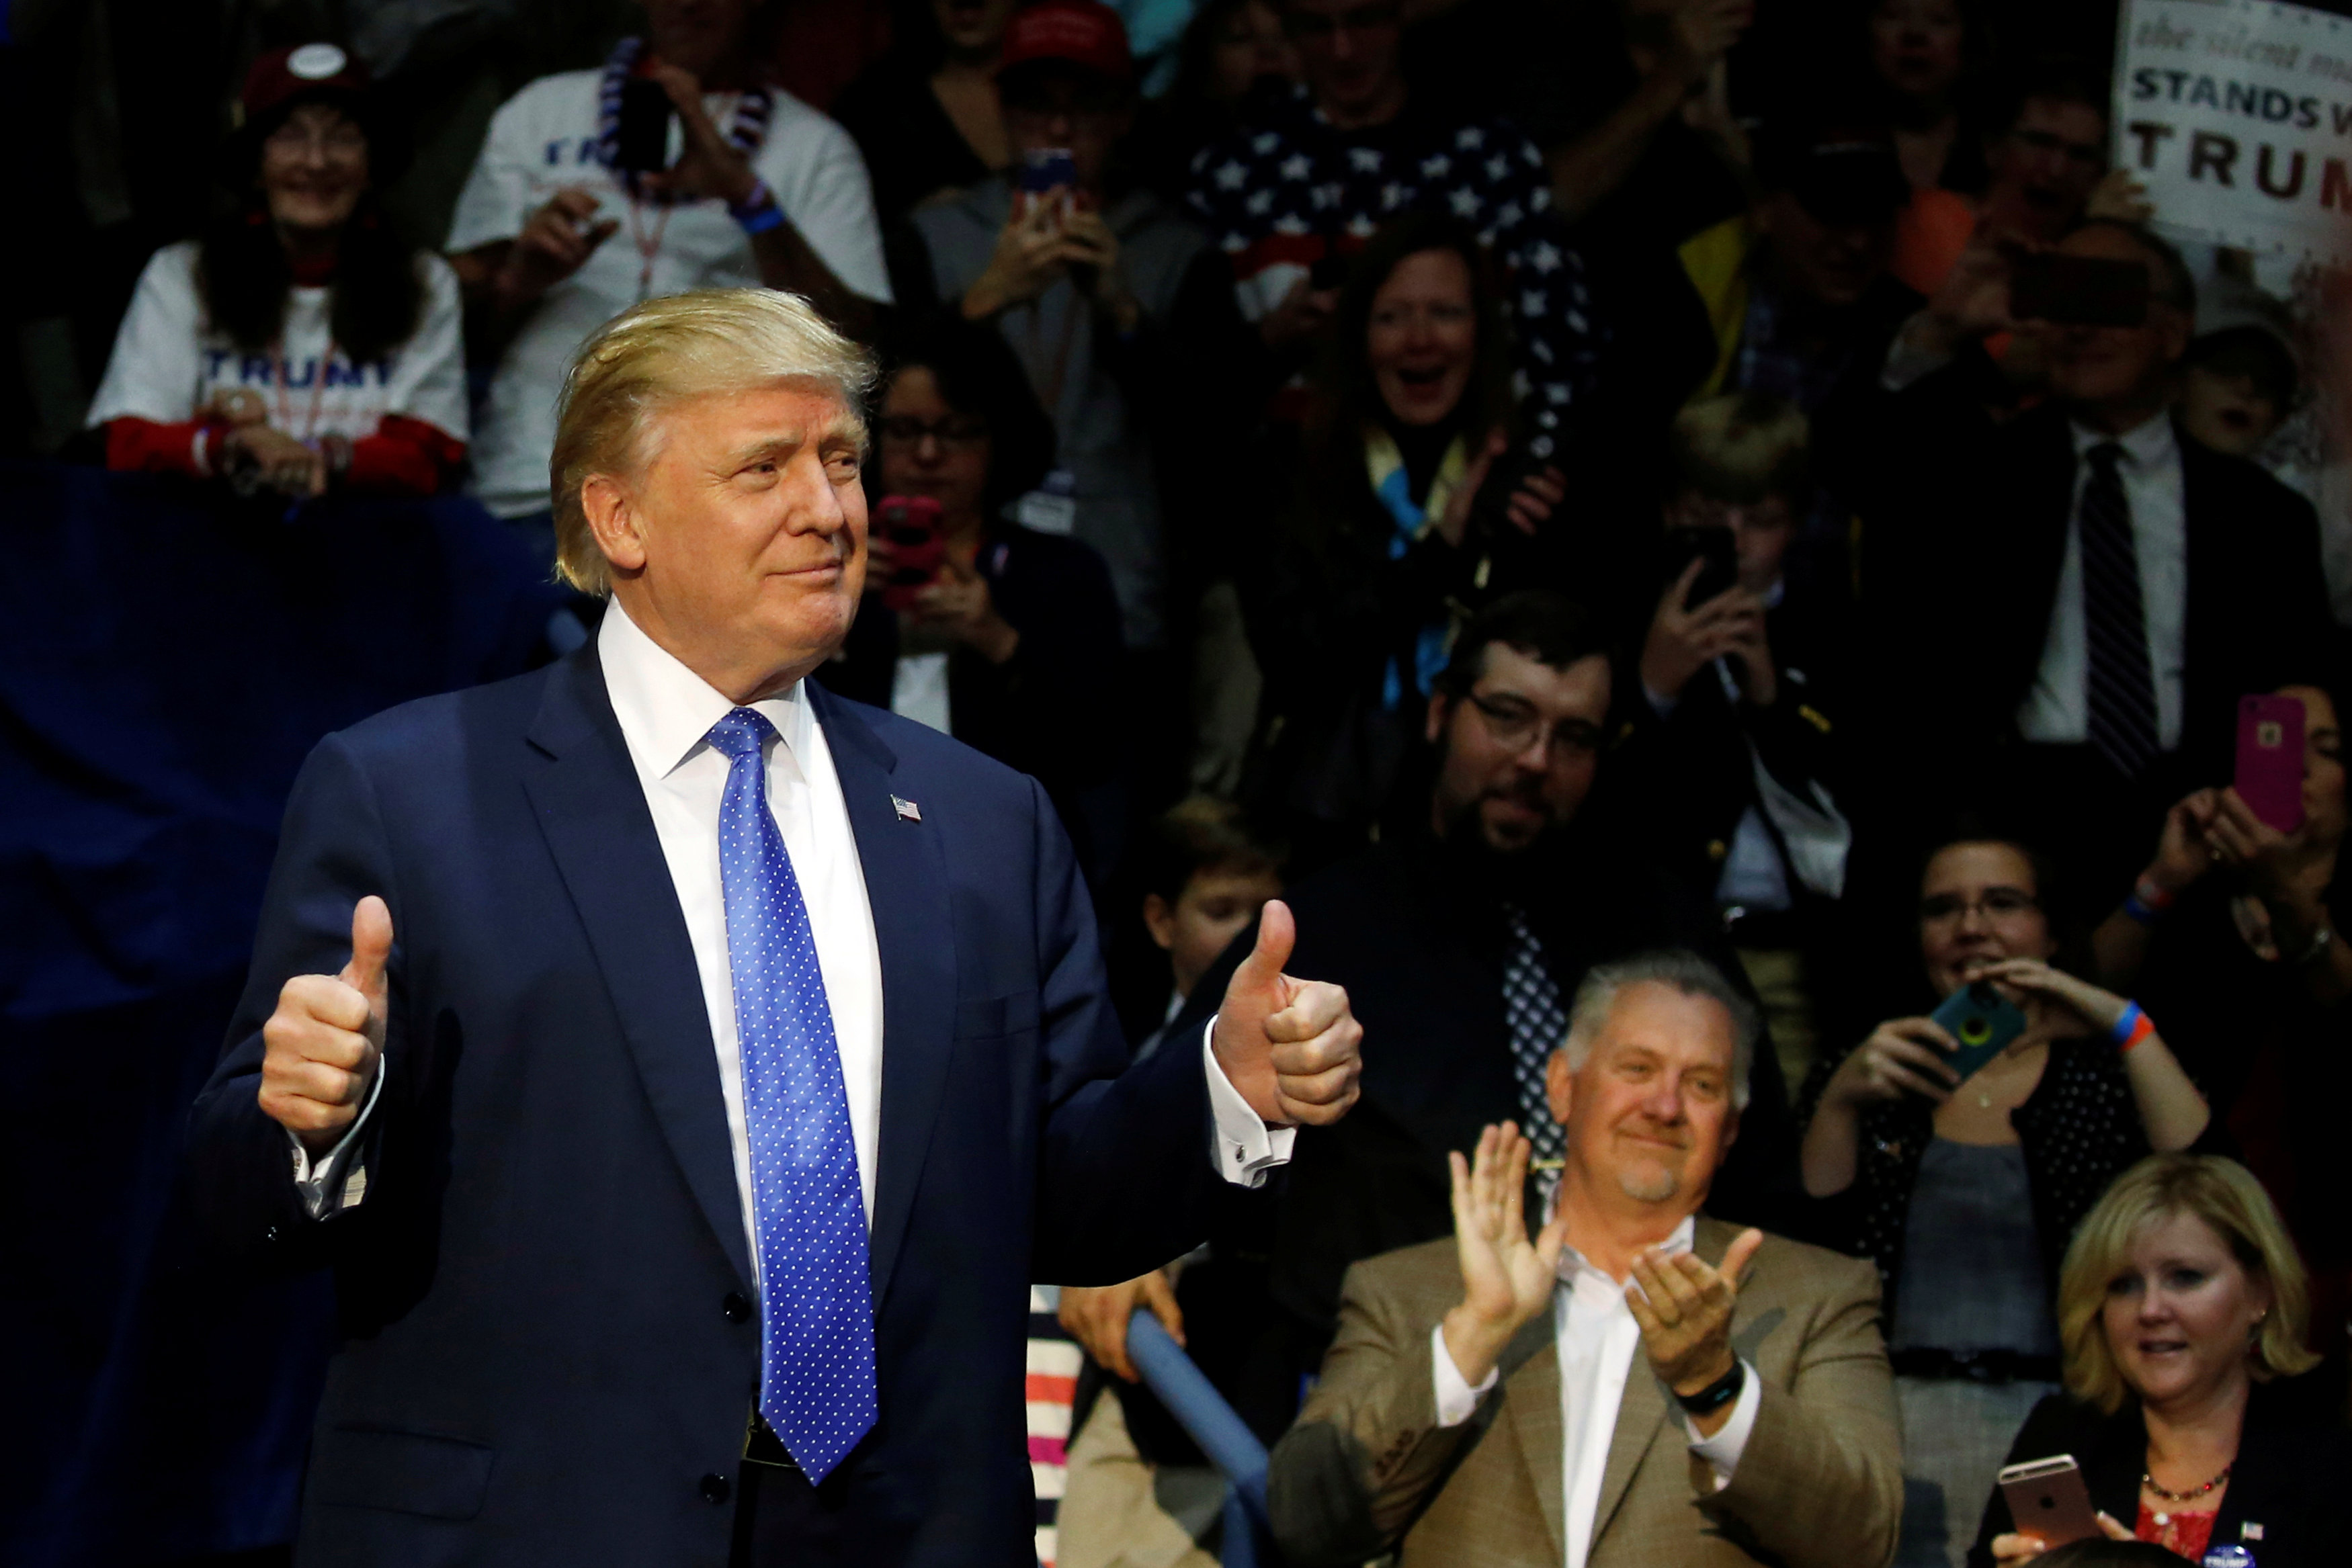 Trump to lay out what he would do in first 100 days if elected president